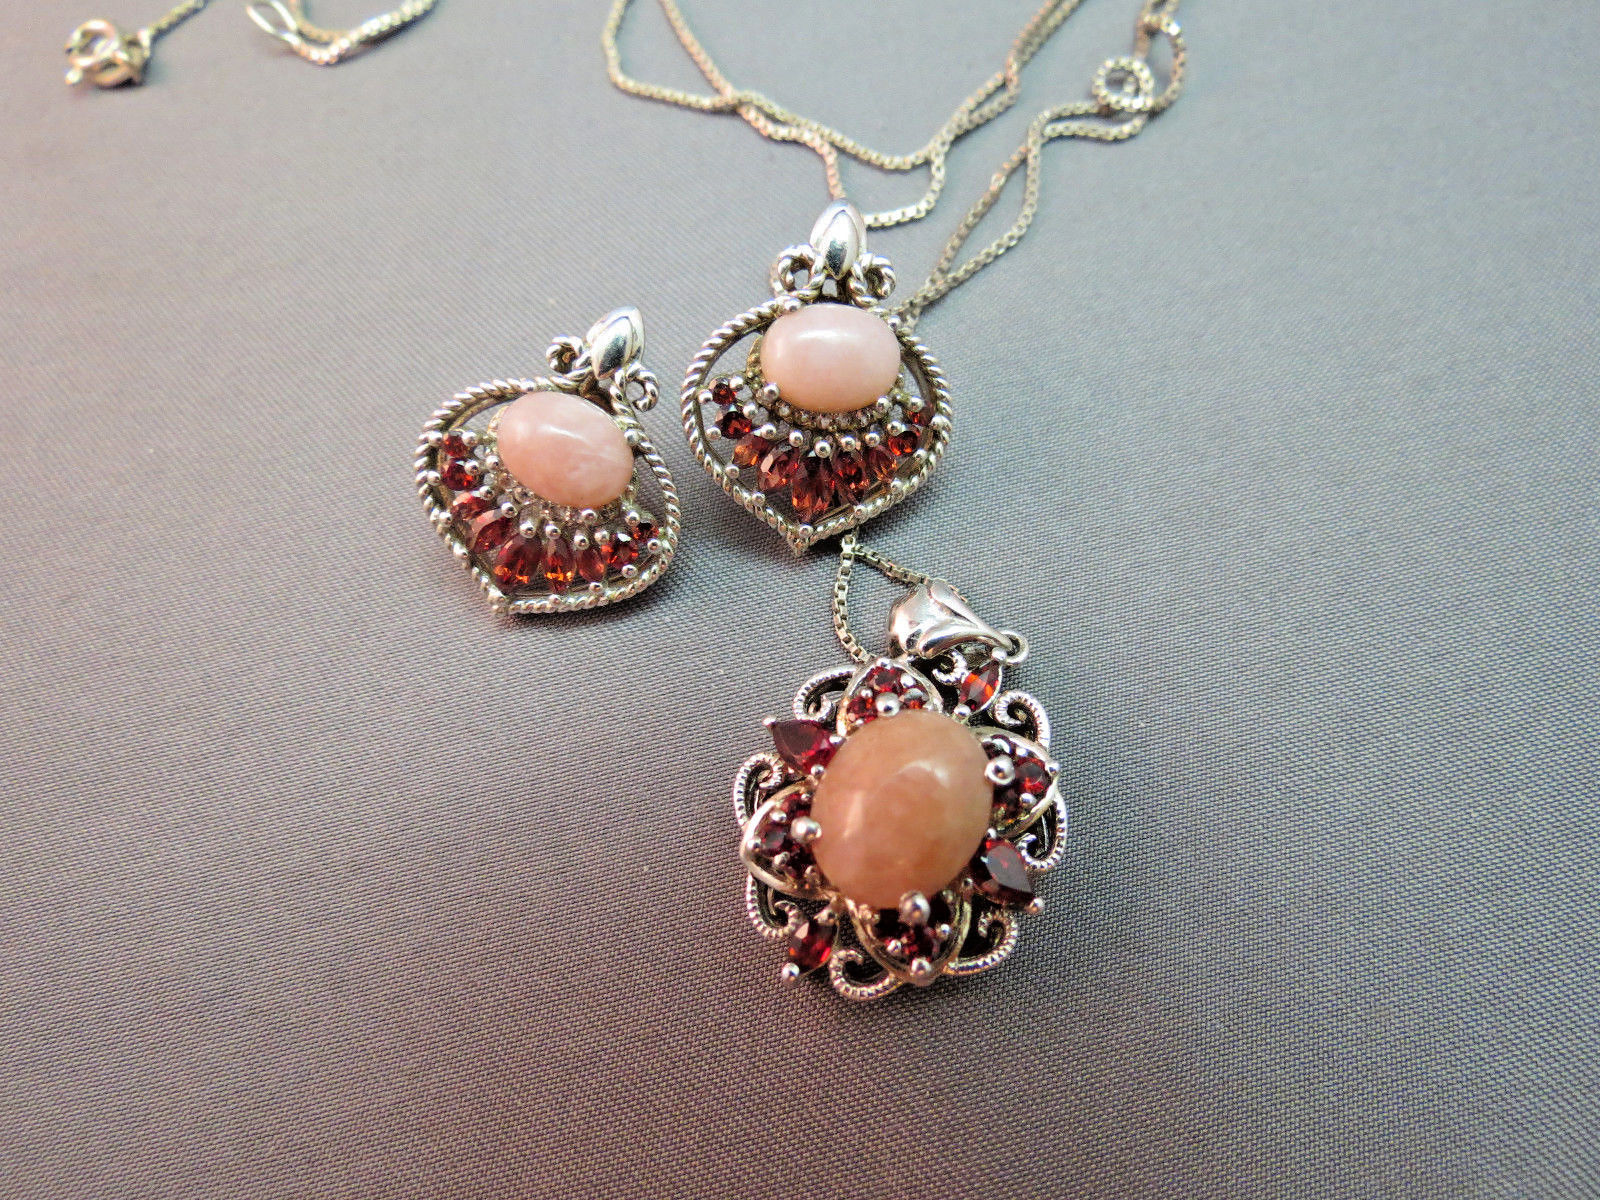 Primary image for Sterling Silver Necklace Earrings Set 10.7g Pink Art Glass Cabochon Garnet Red